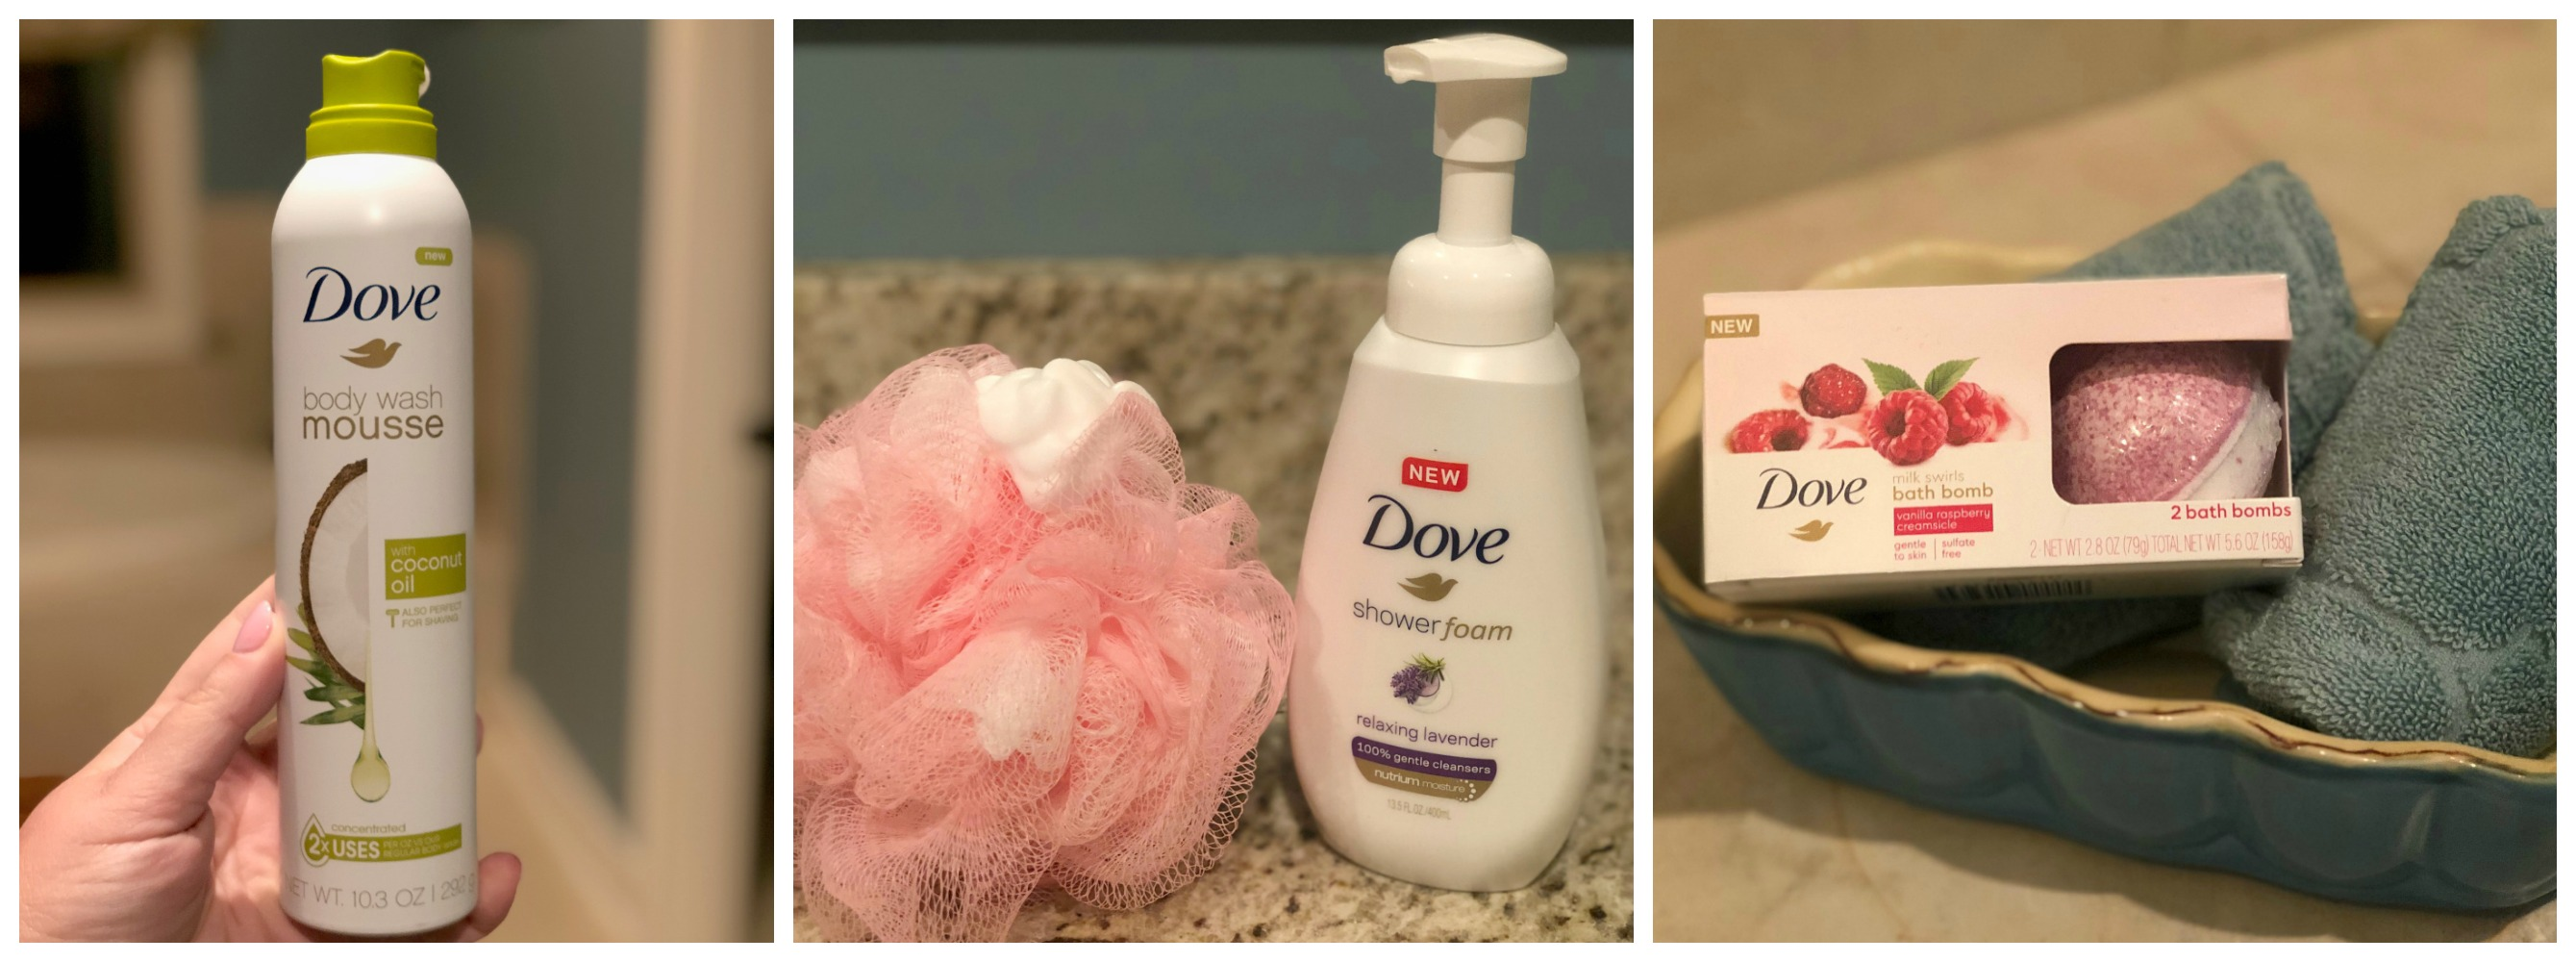 Last Chance For Savings On Dove Body Products With The Digital Coupon